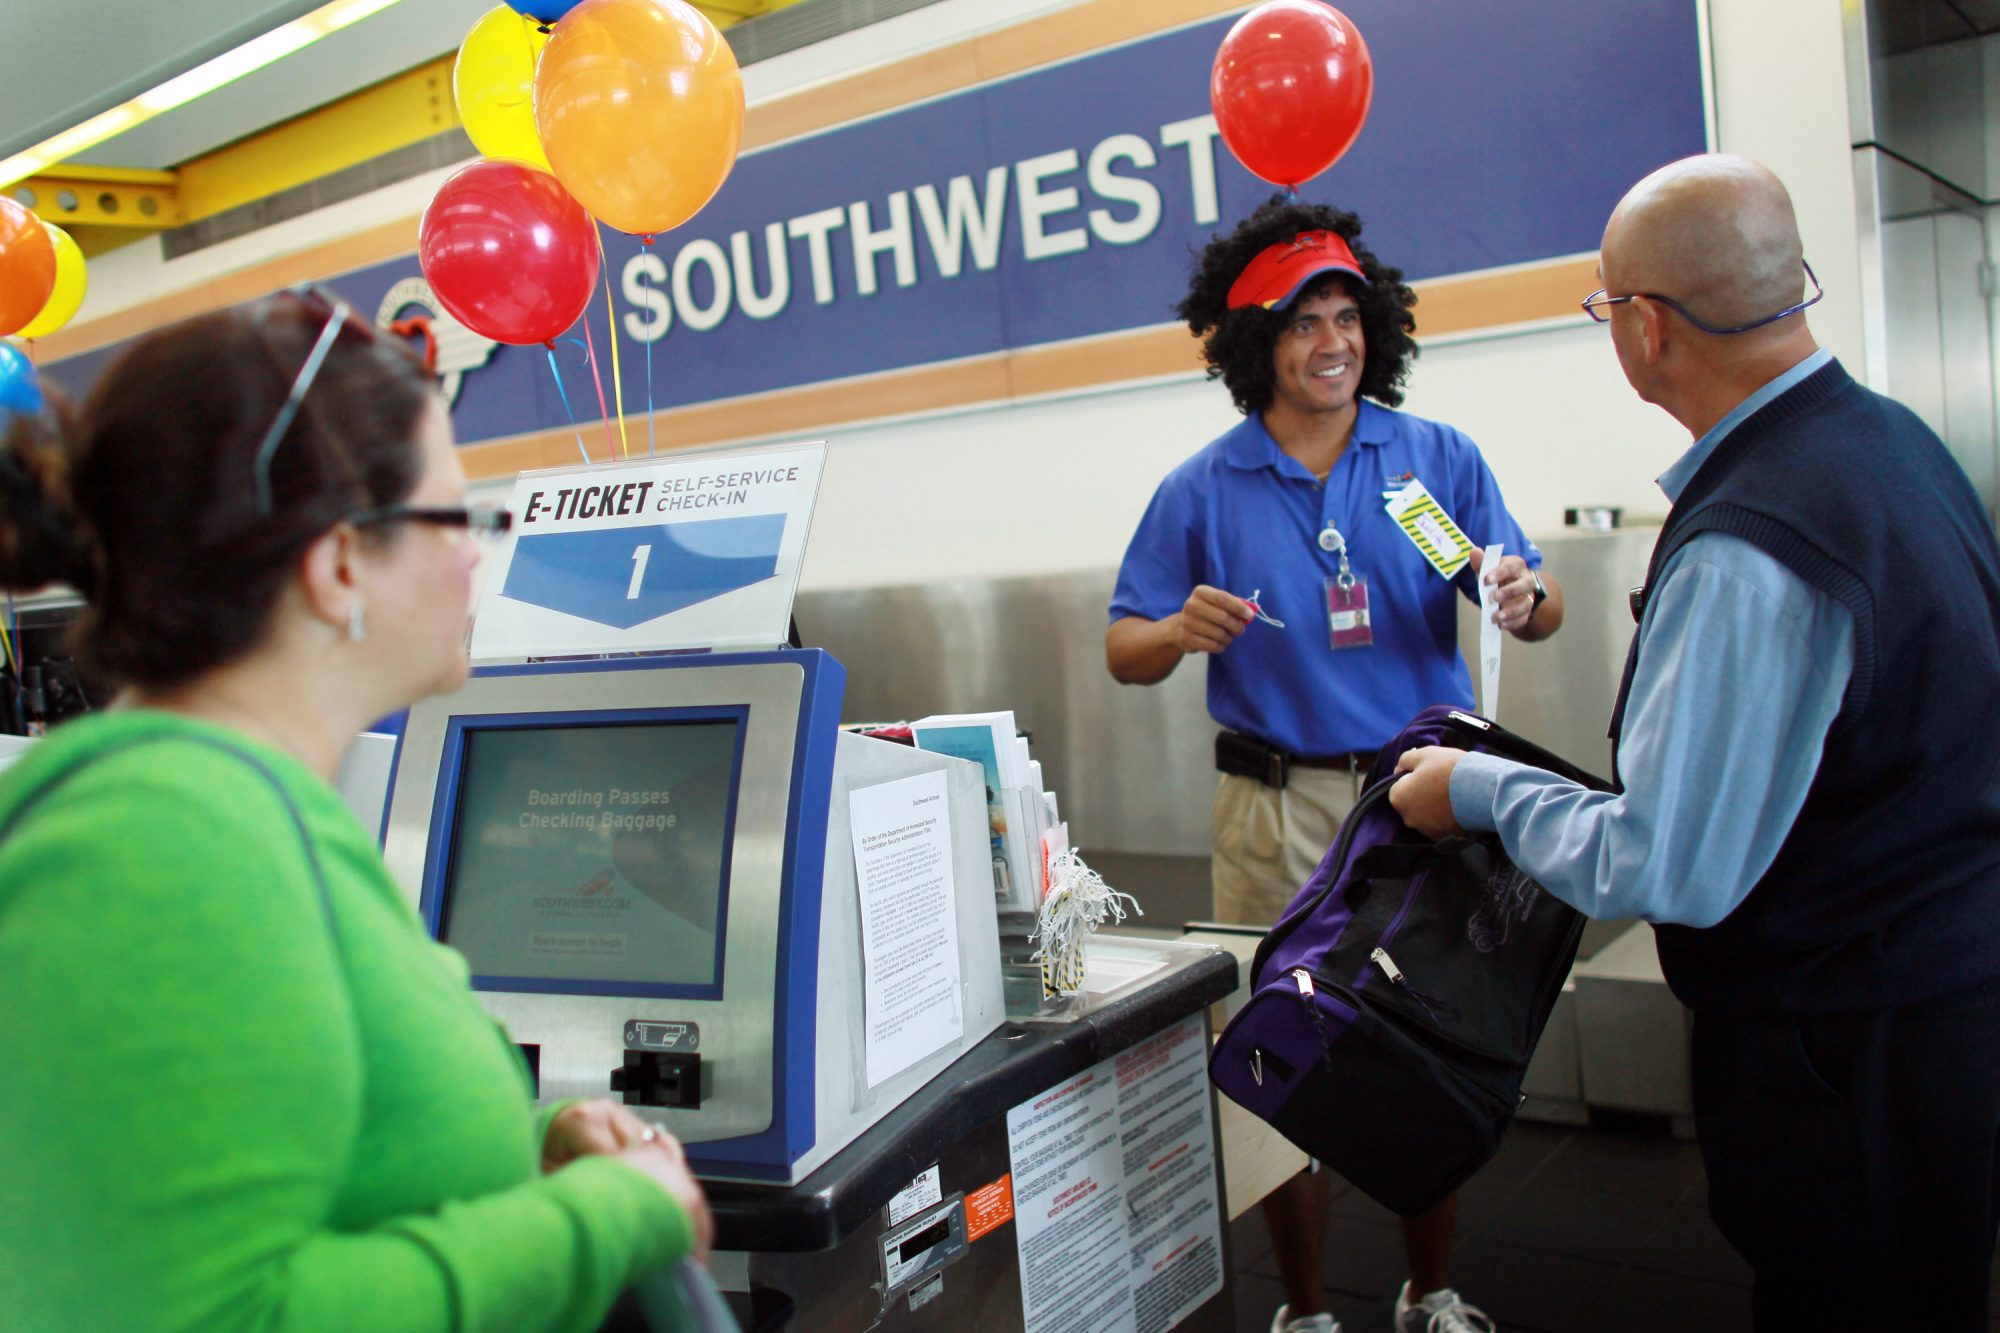 Southwest Ticket Counter Adorned with Balloons